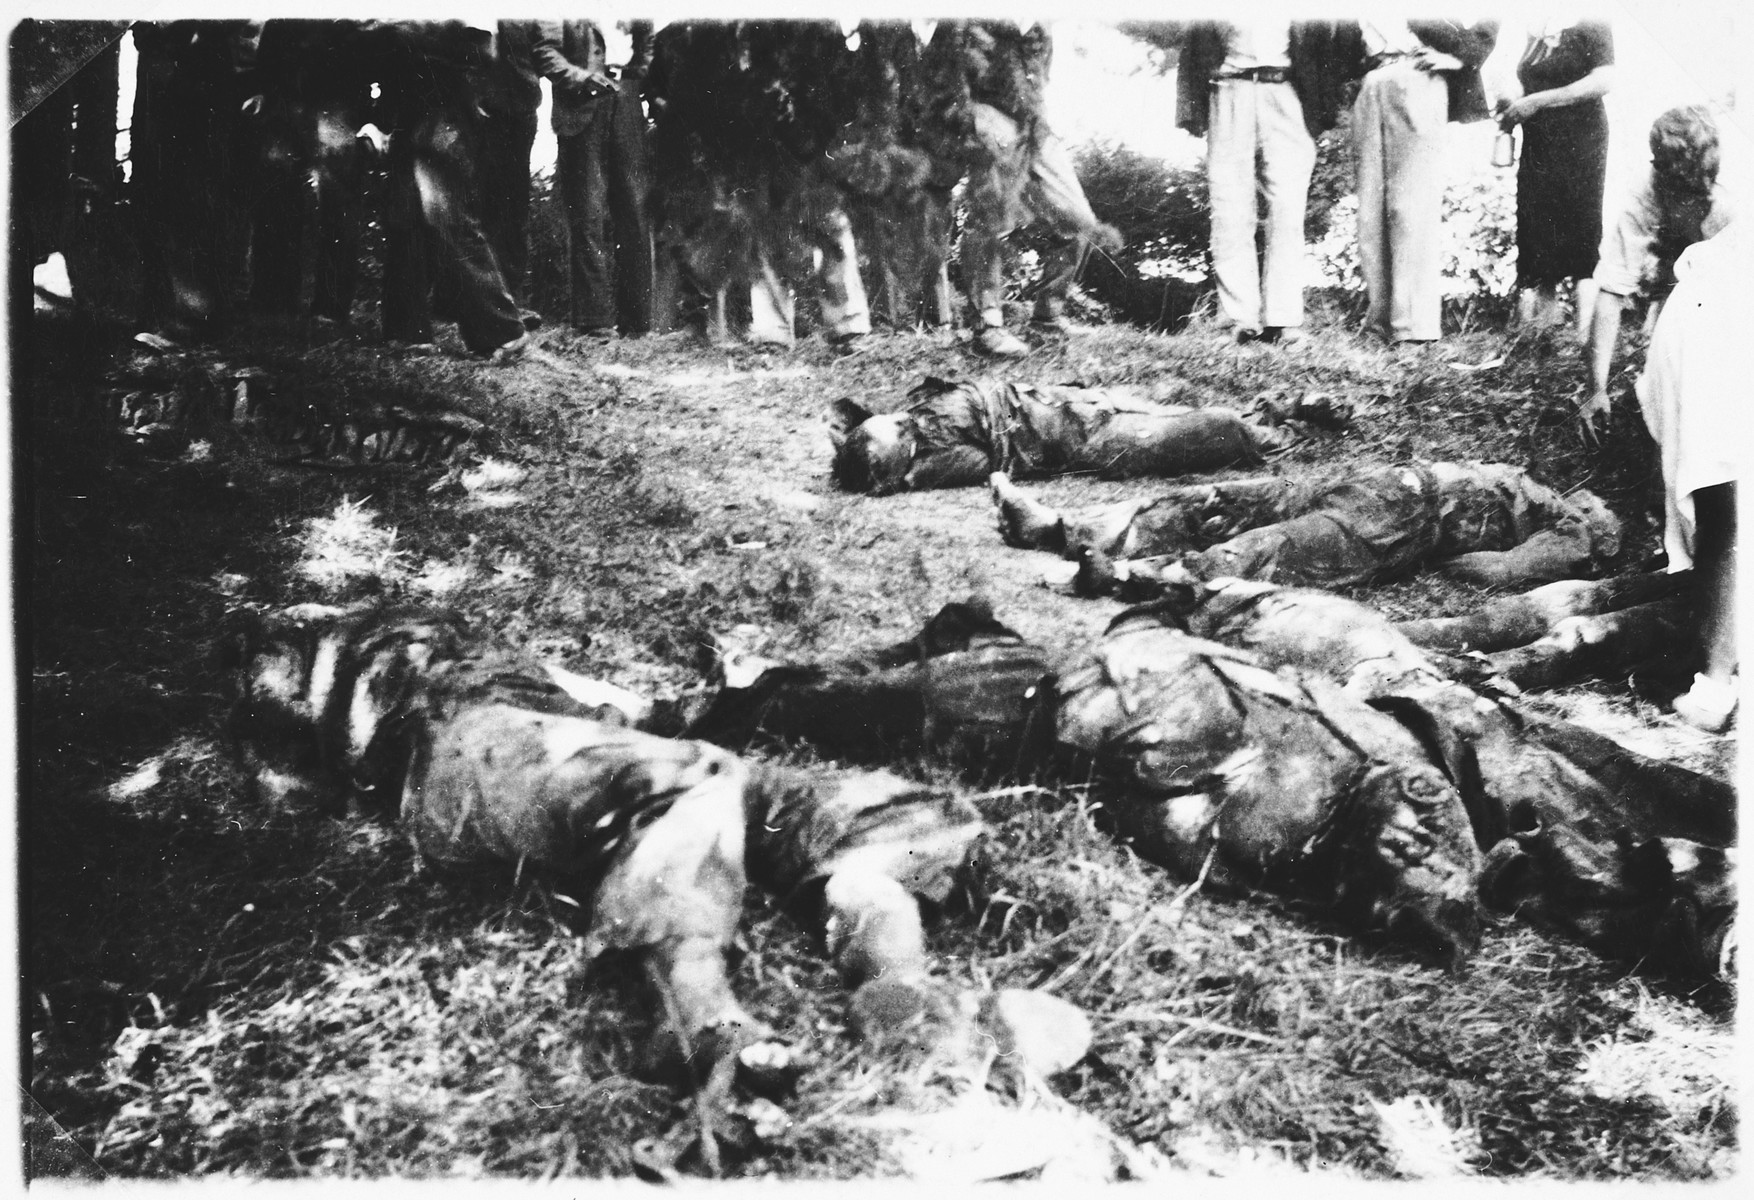 French civilians look at the bodies of fellow townspeople killed by Wehrmacht troopers in St. Pol-de-Leon.